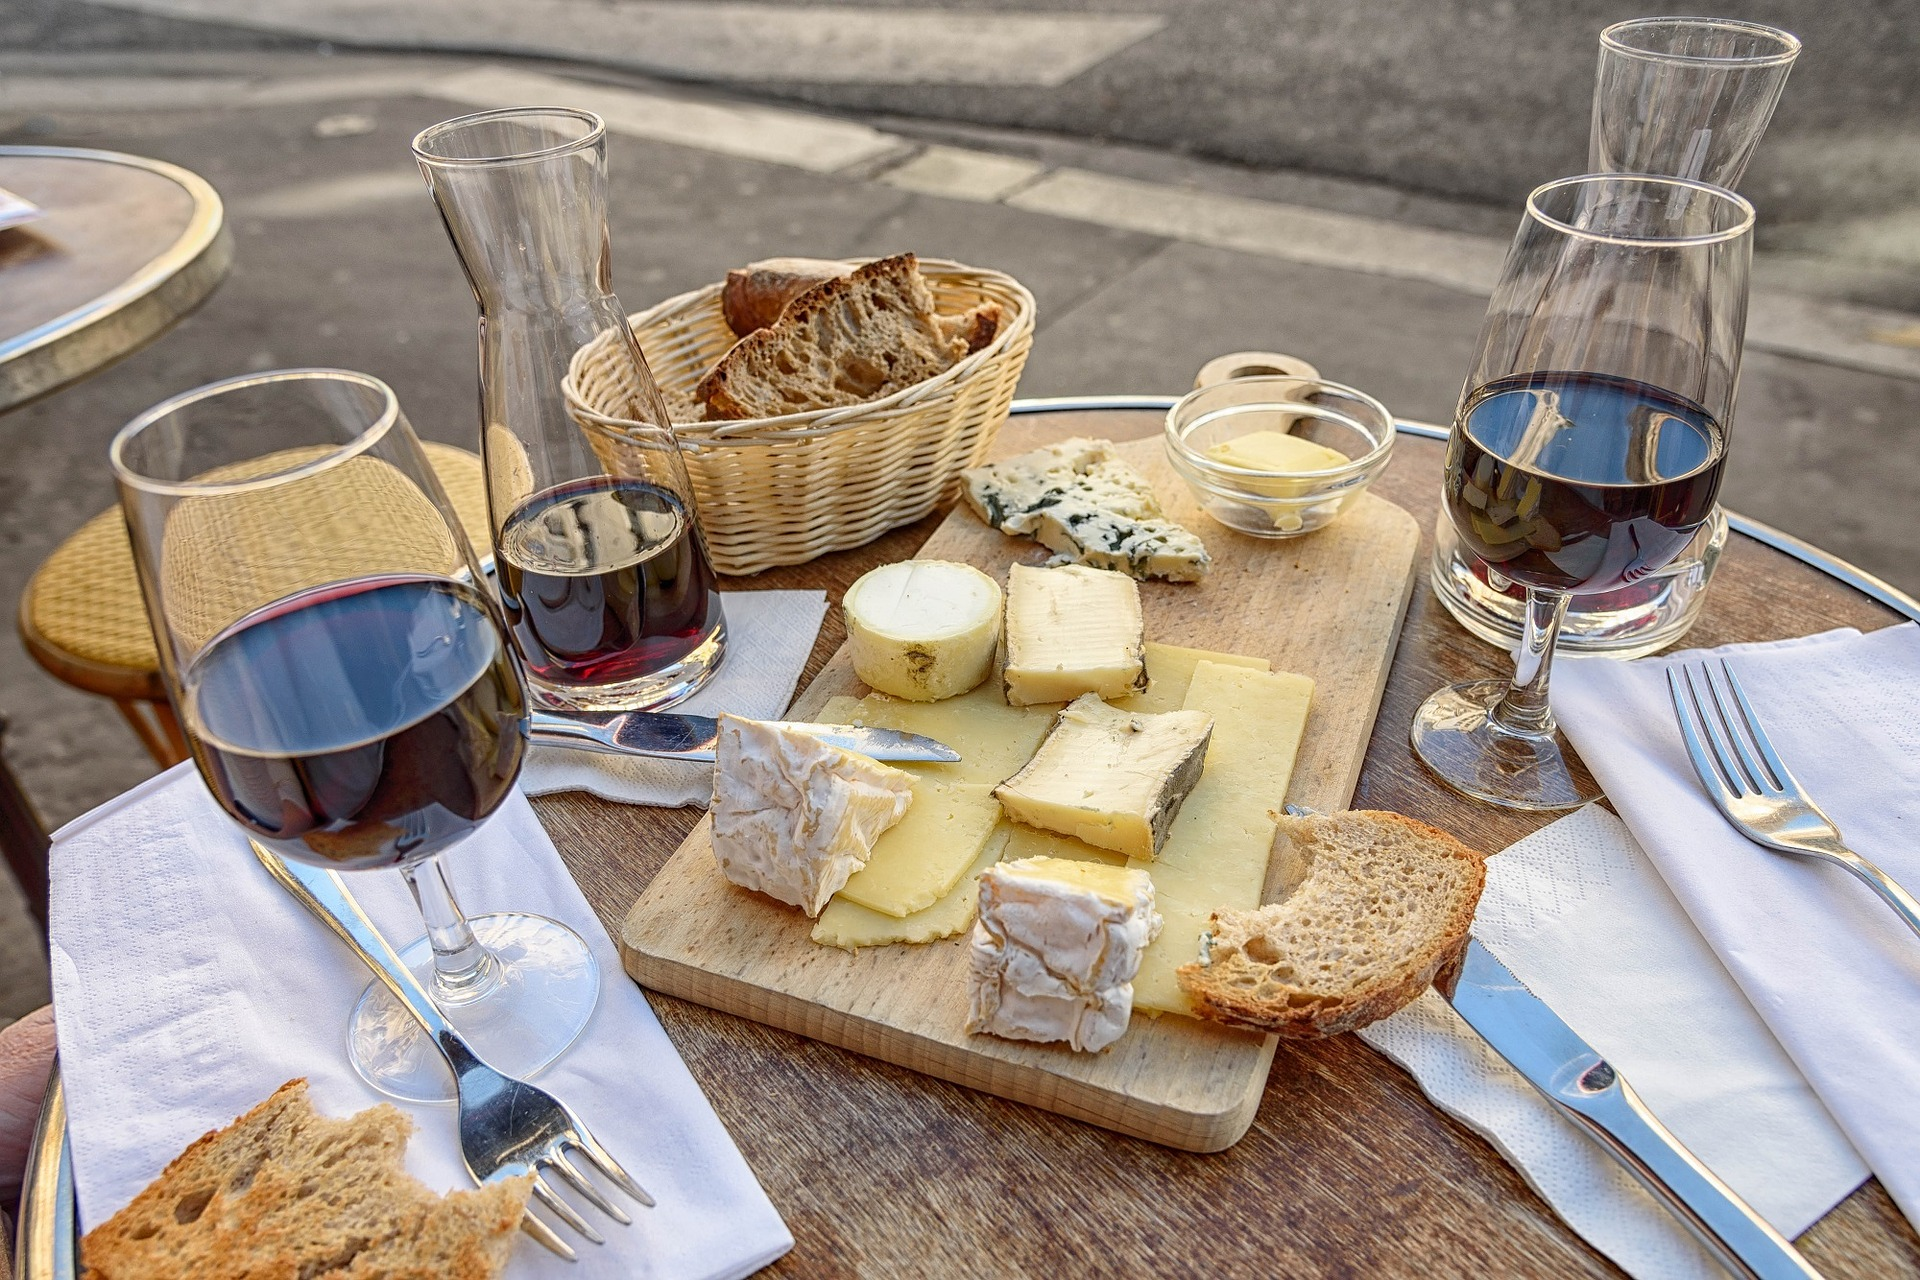 French cheese and wine at a Parisian café.